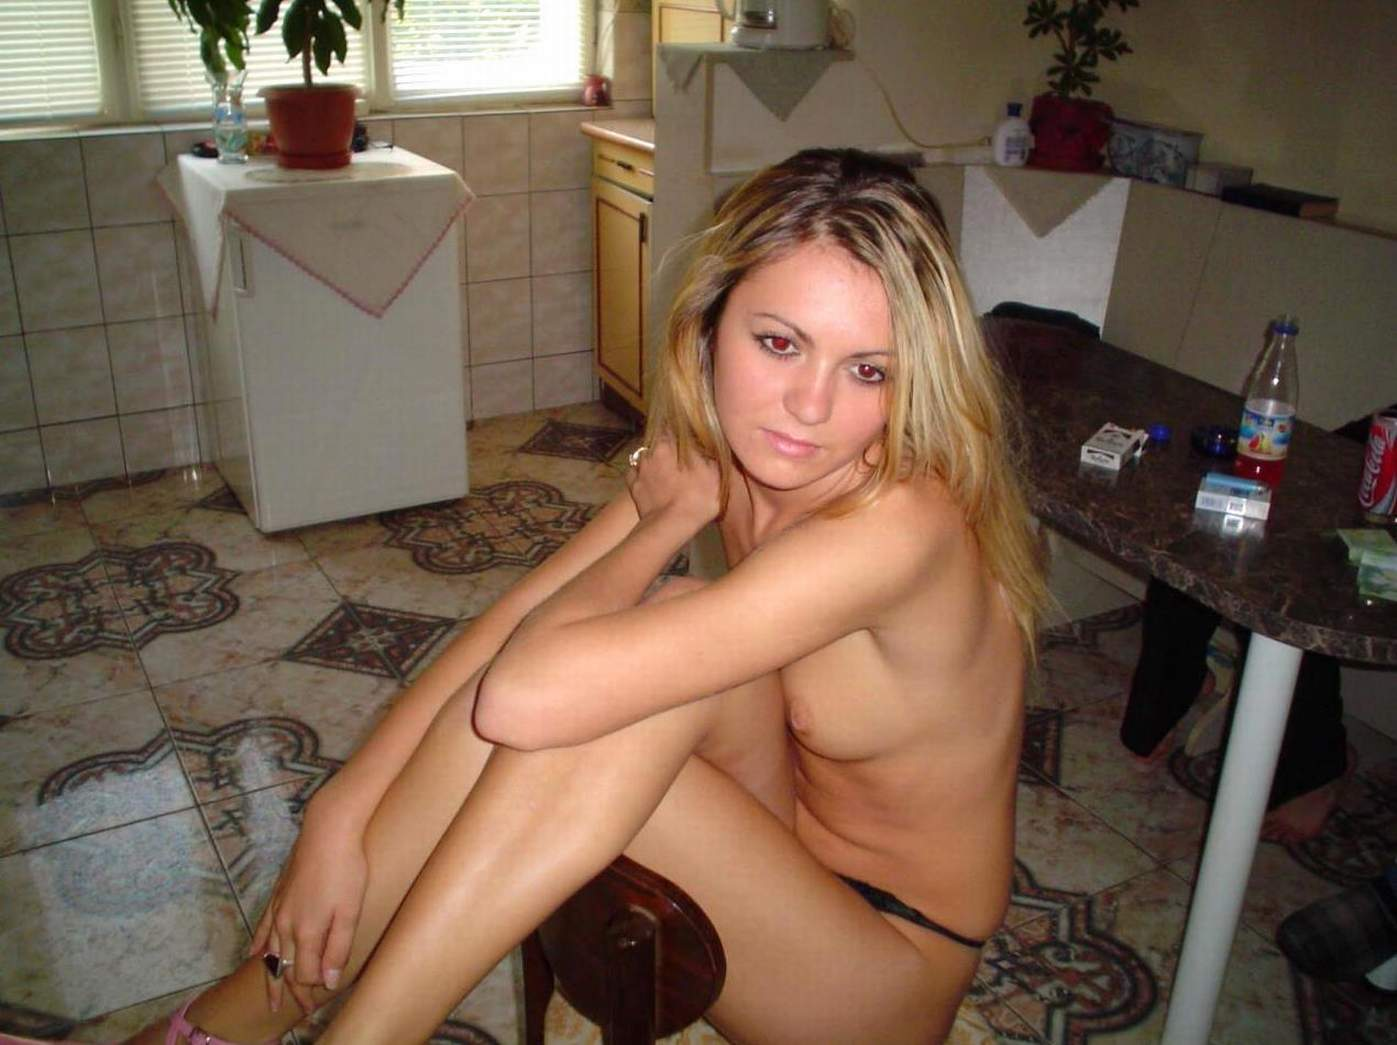 Naked home pics of my wife